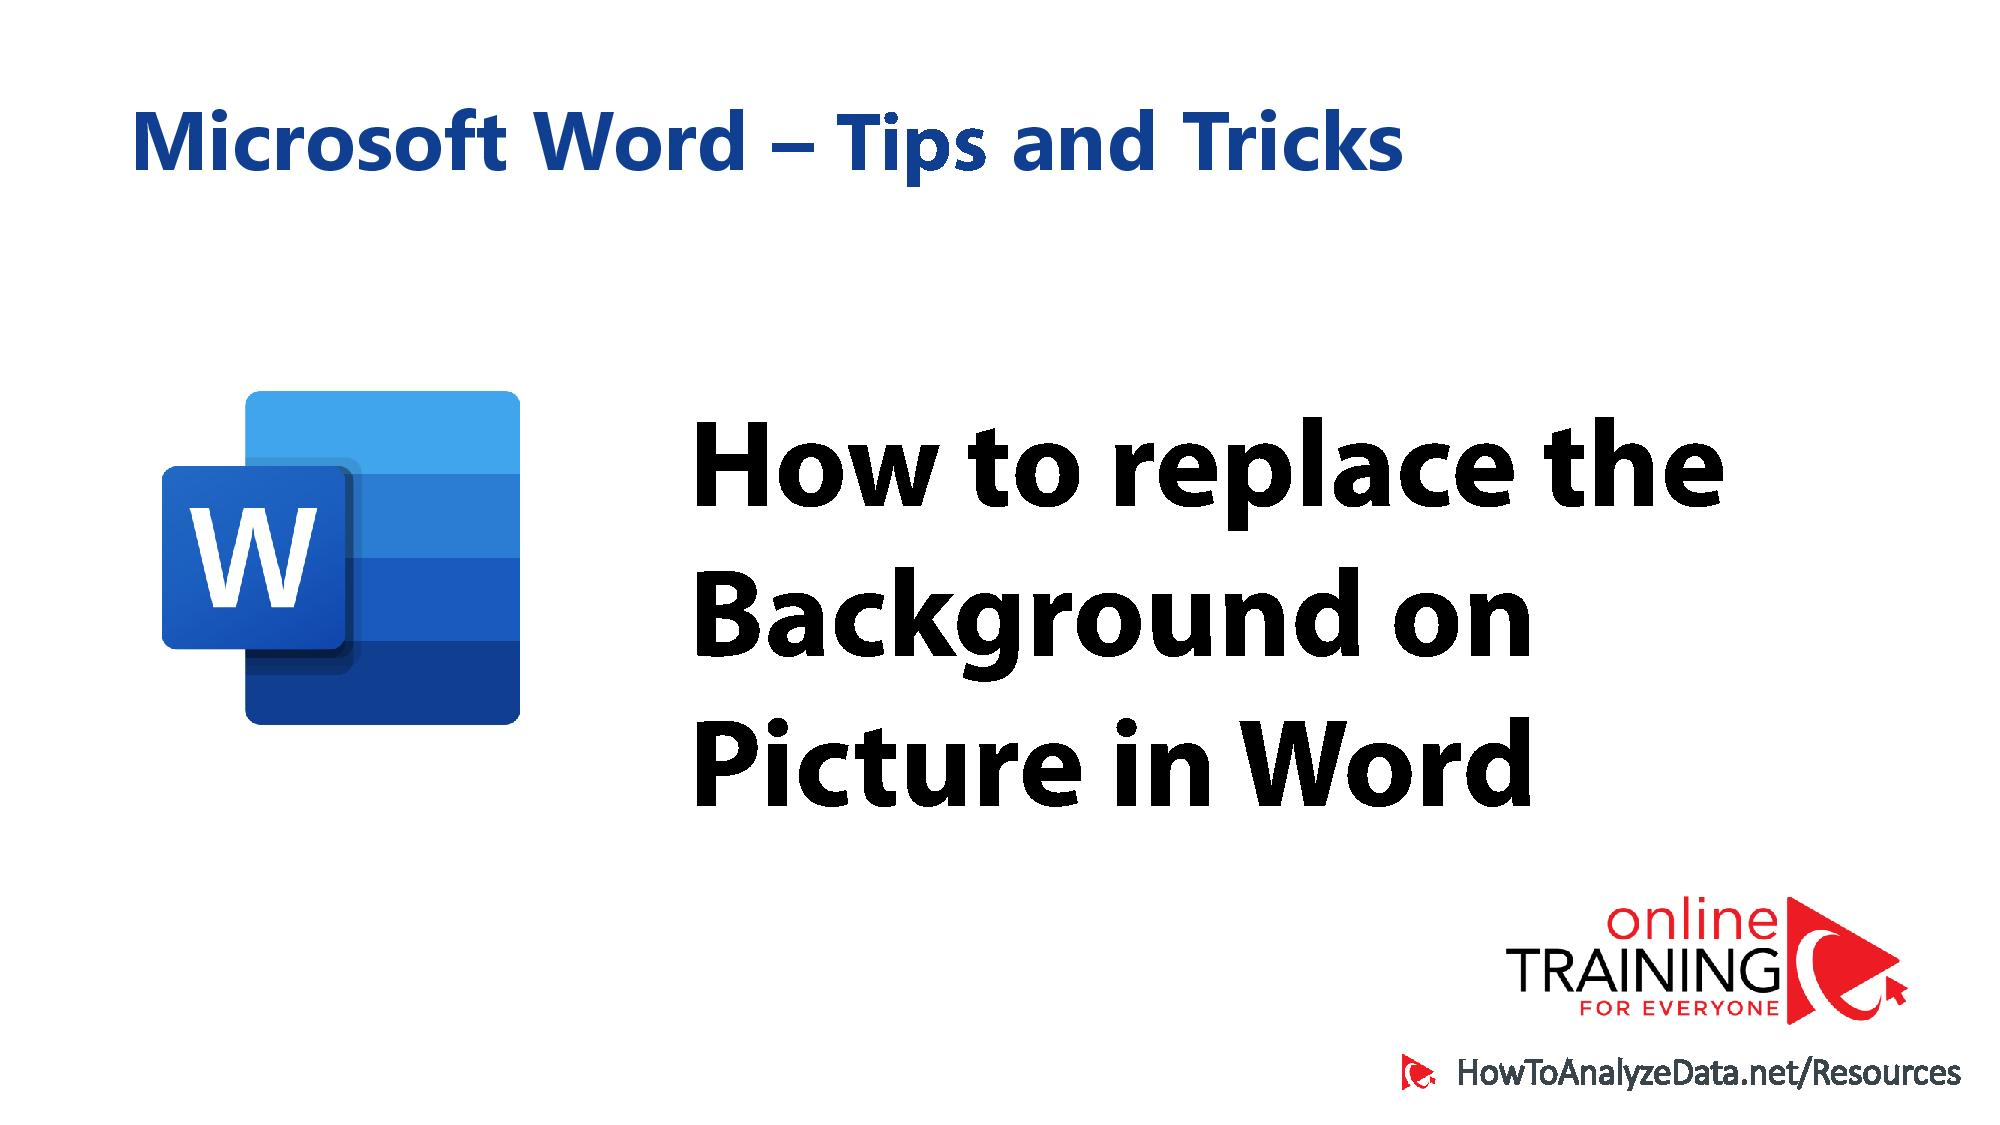 How to replace the background on Image in Word